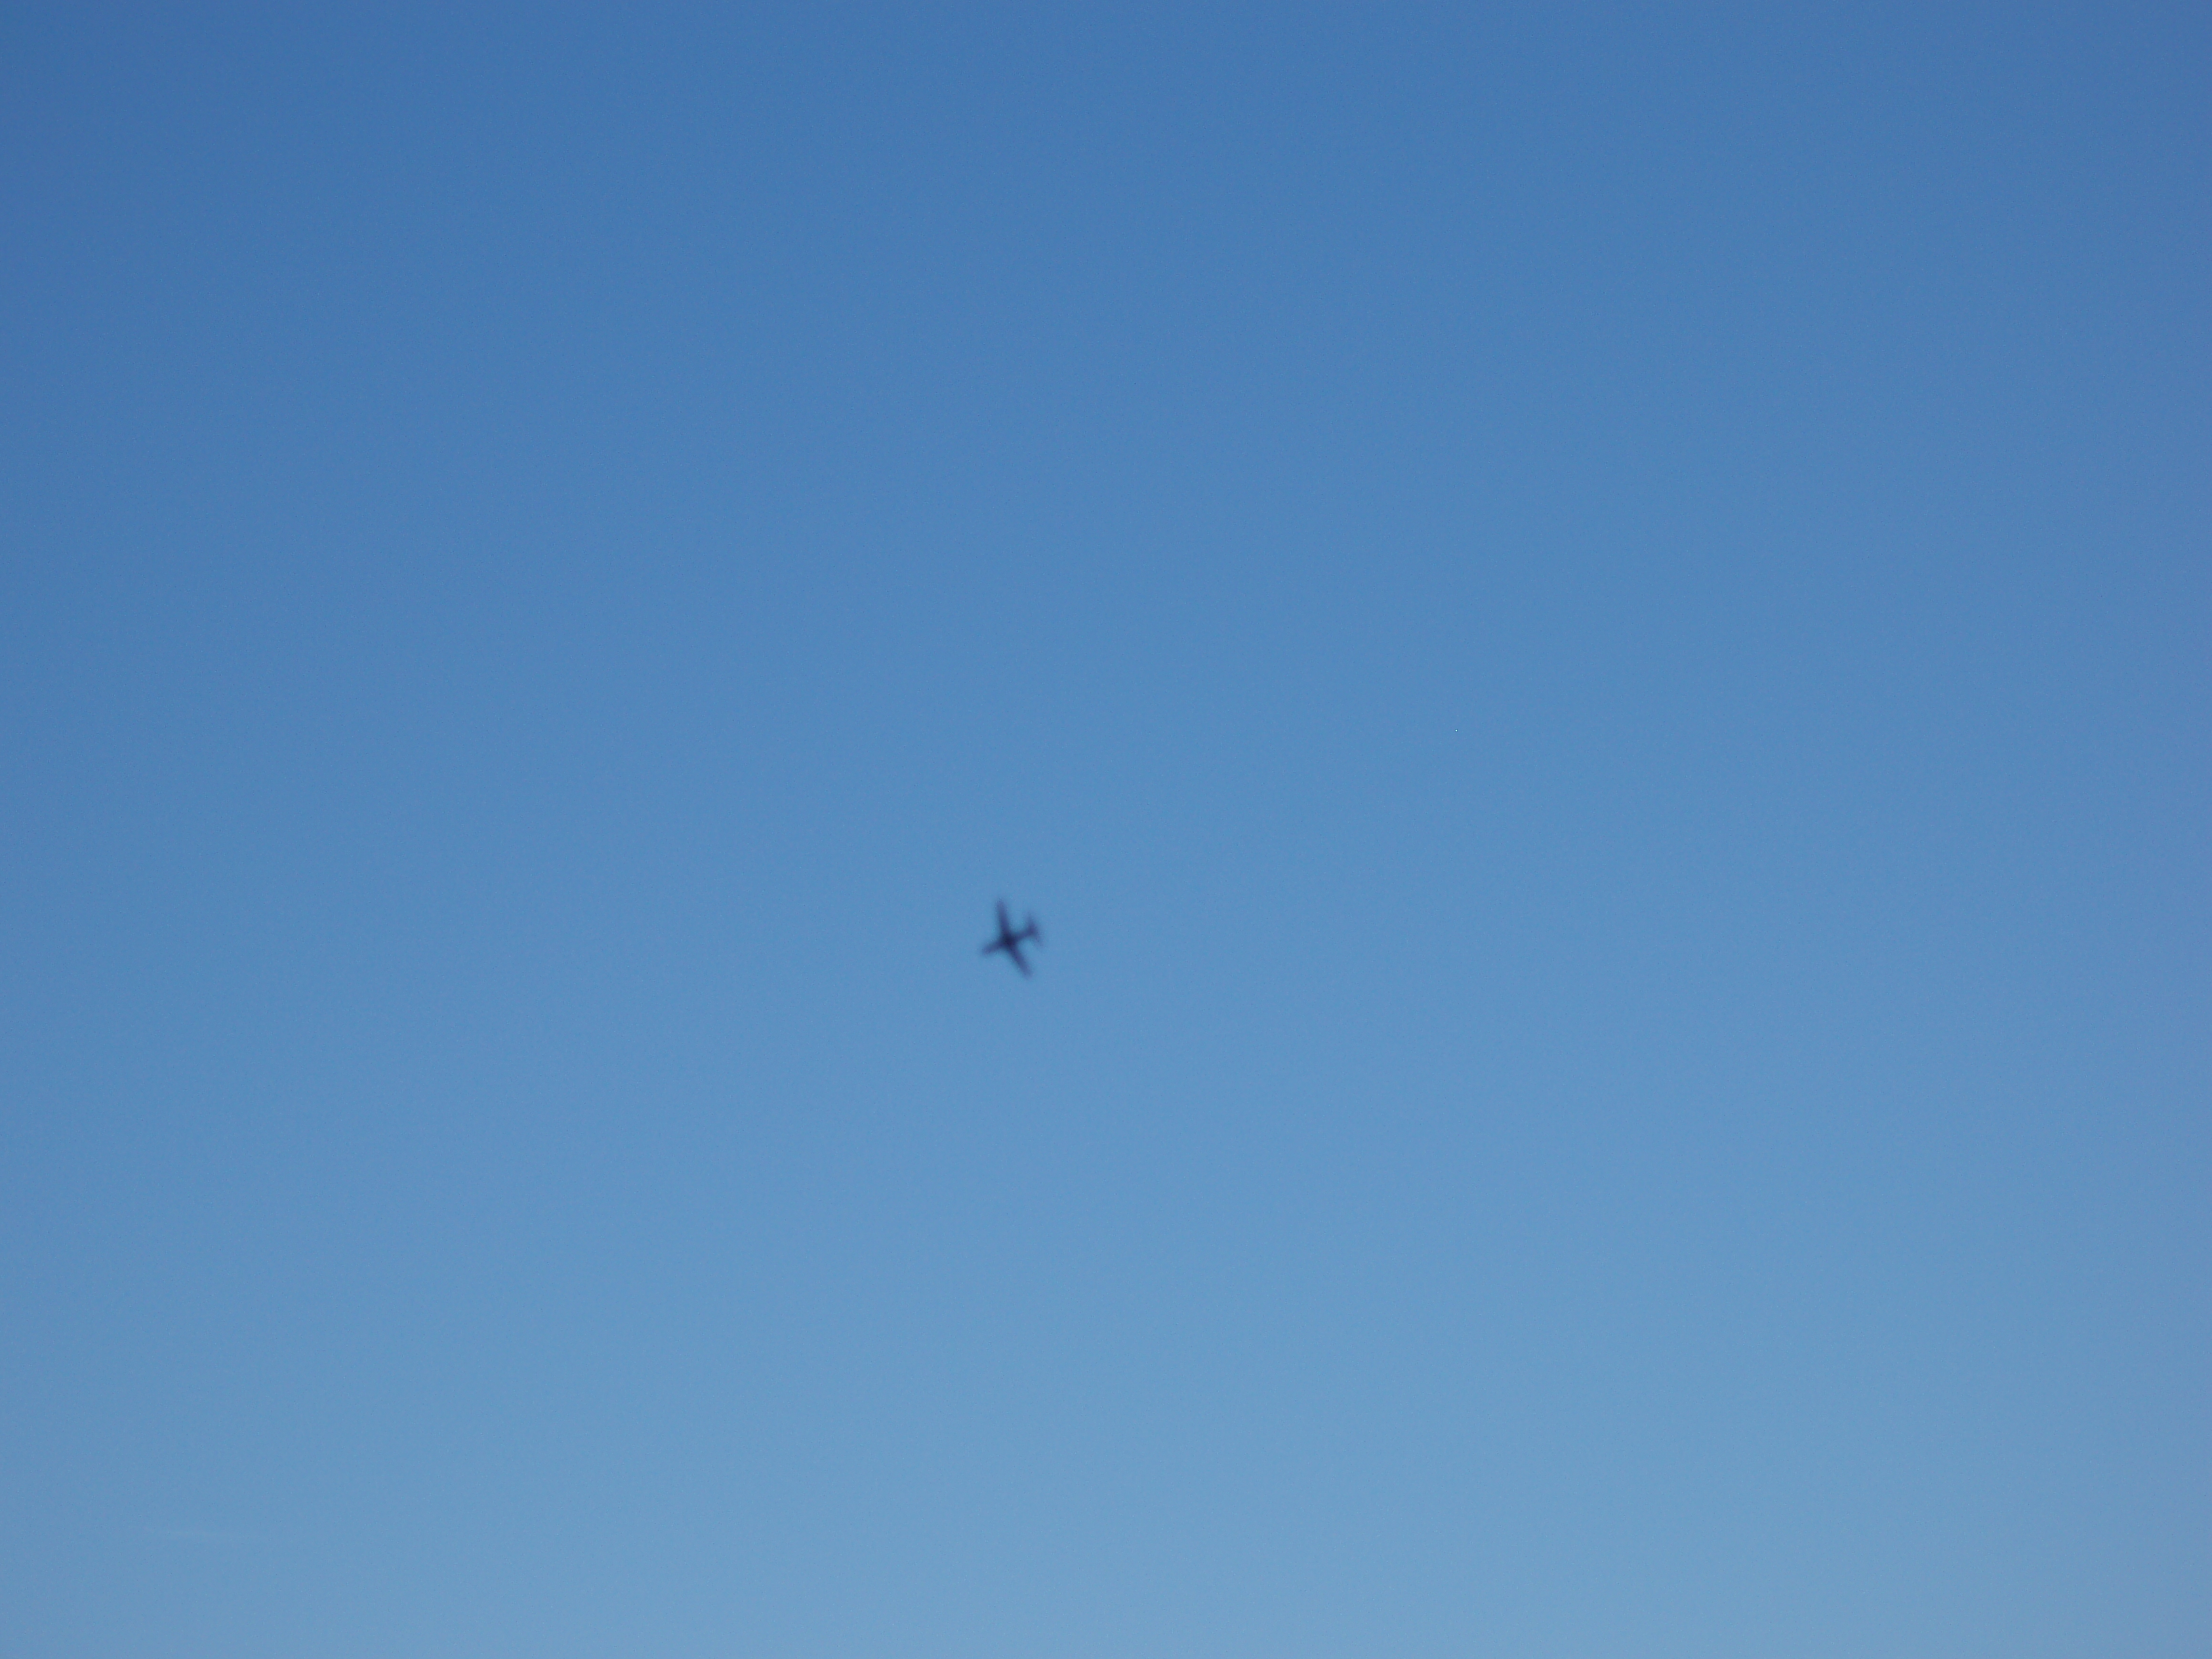 abstract sky image, small defocussed plane shape